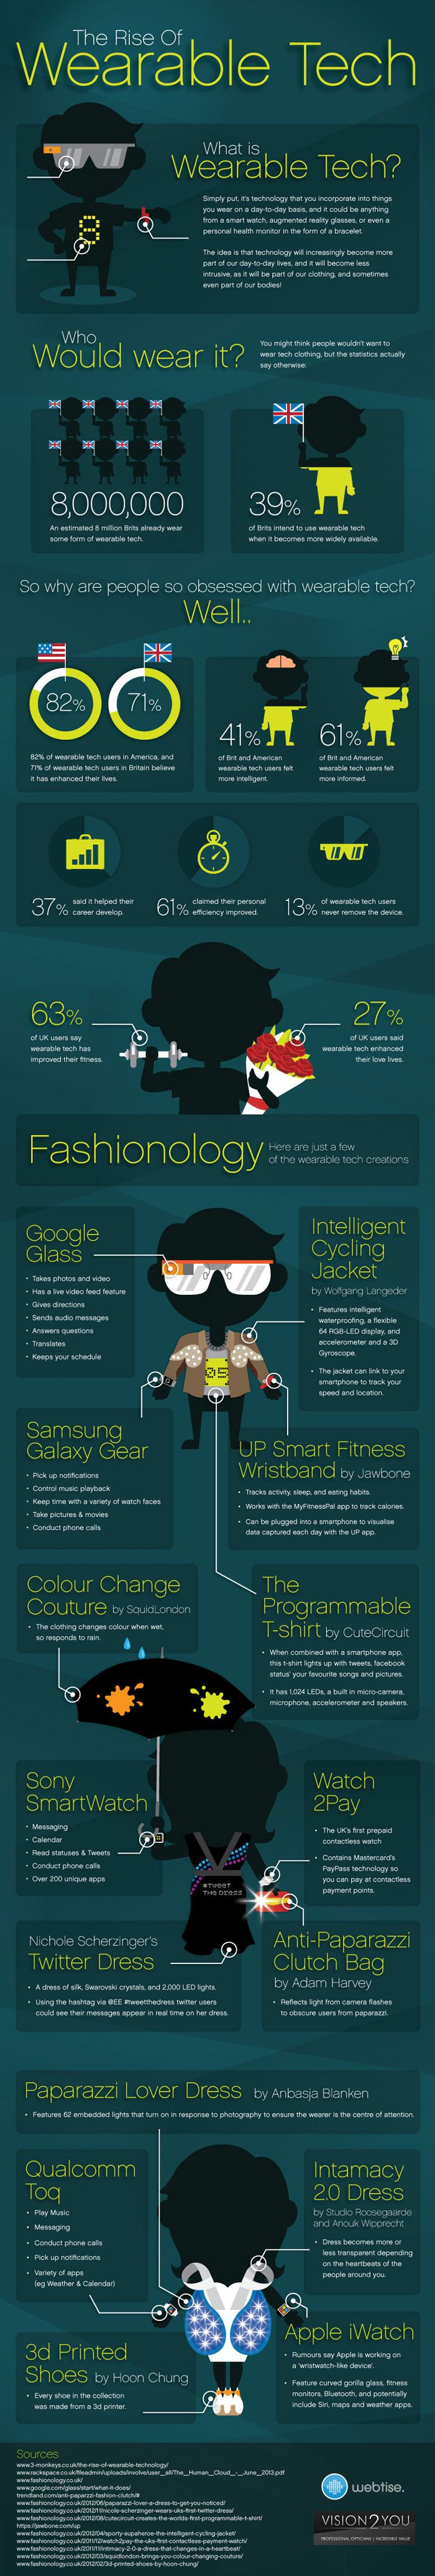 Infographic about the rise of wearable technology